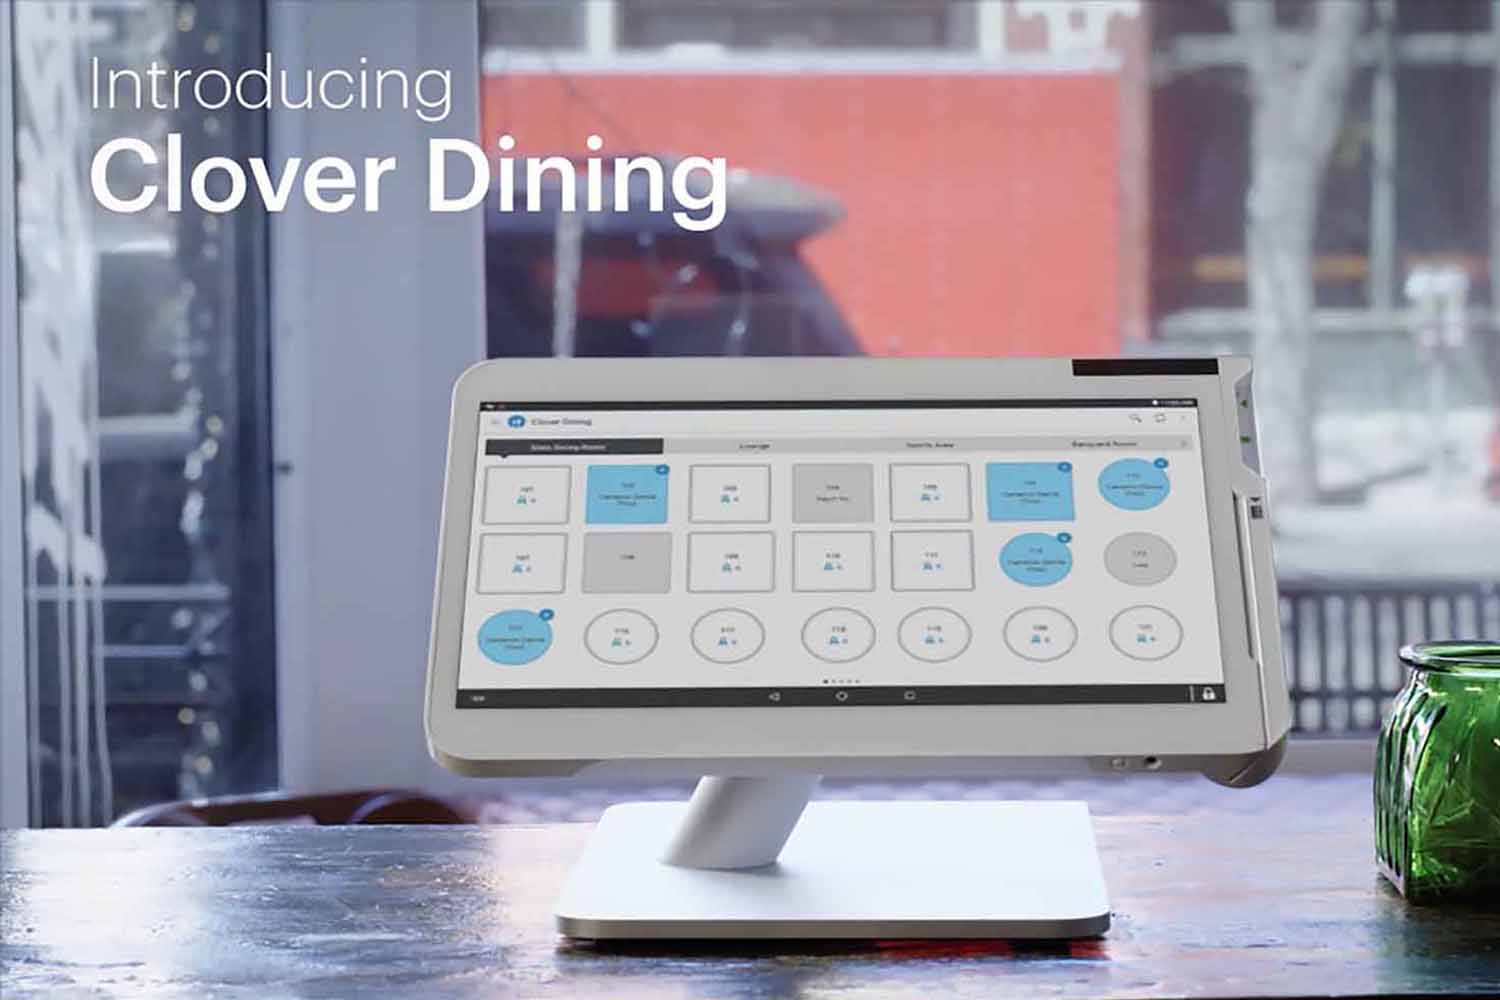 pic of the clover dining app